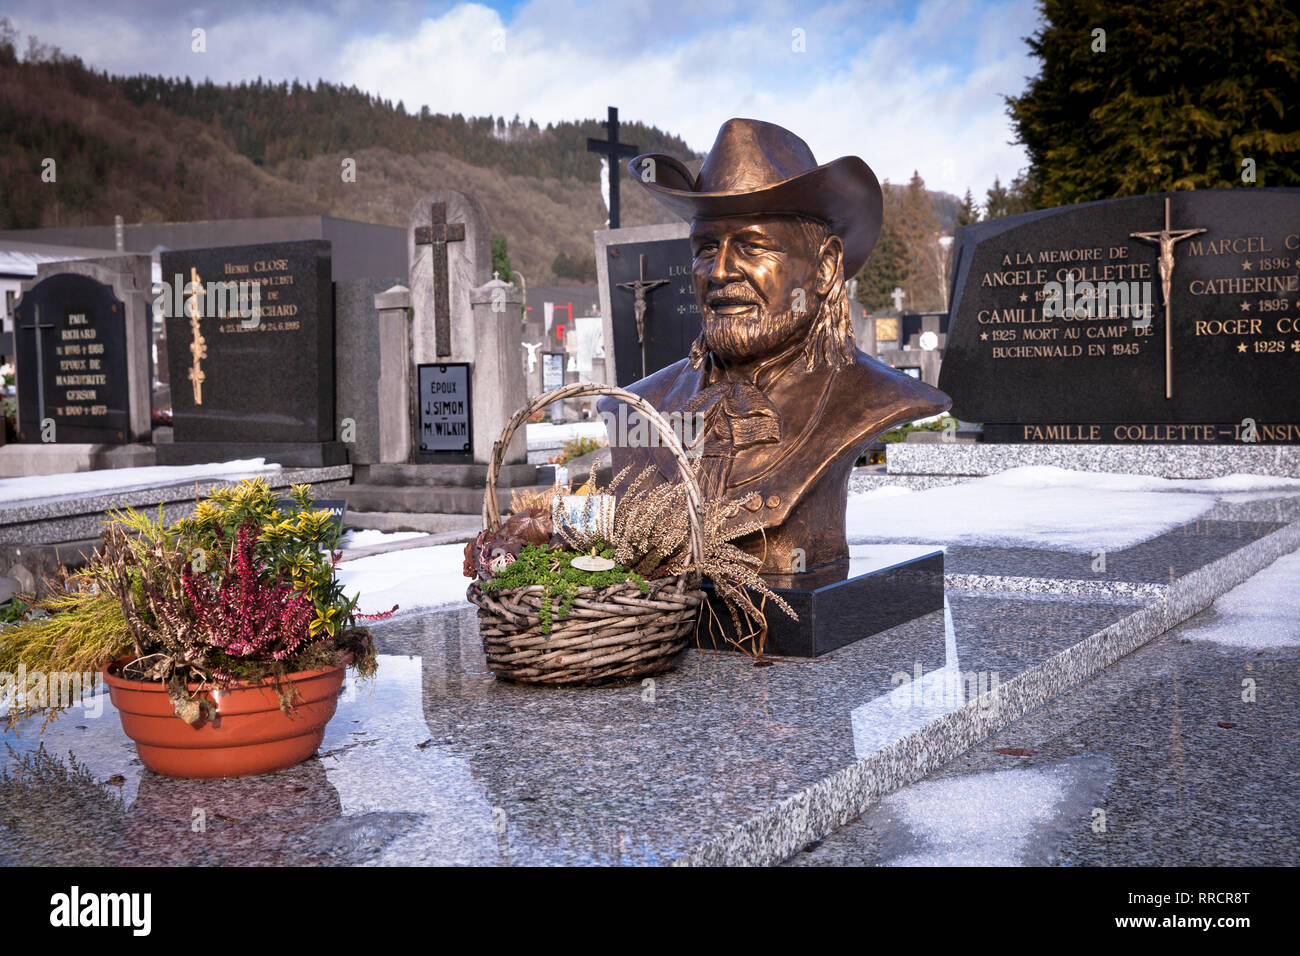 cemetery of Malmedy, grave with the bust of the singer Roger Collette, Belgium, Europe.  Grab mit Bueste des Saengers Roger Collette auf dem Friedhof  Stock Photo